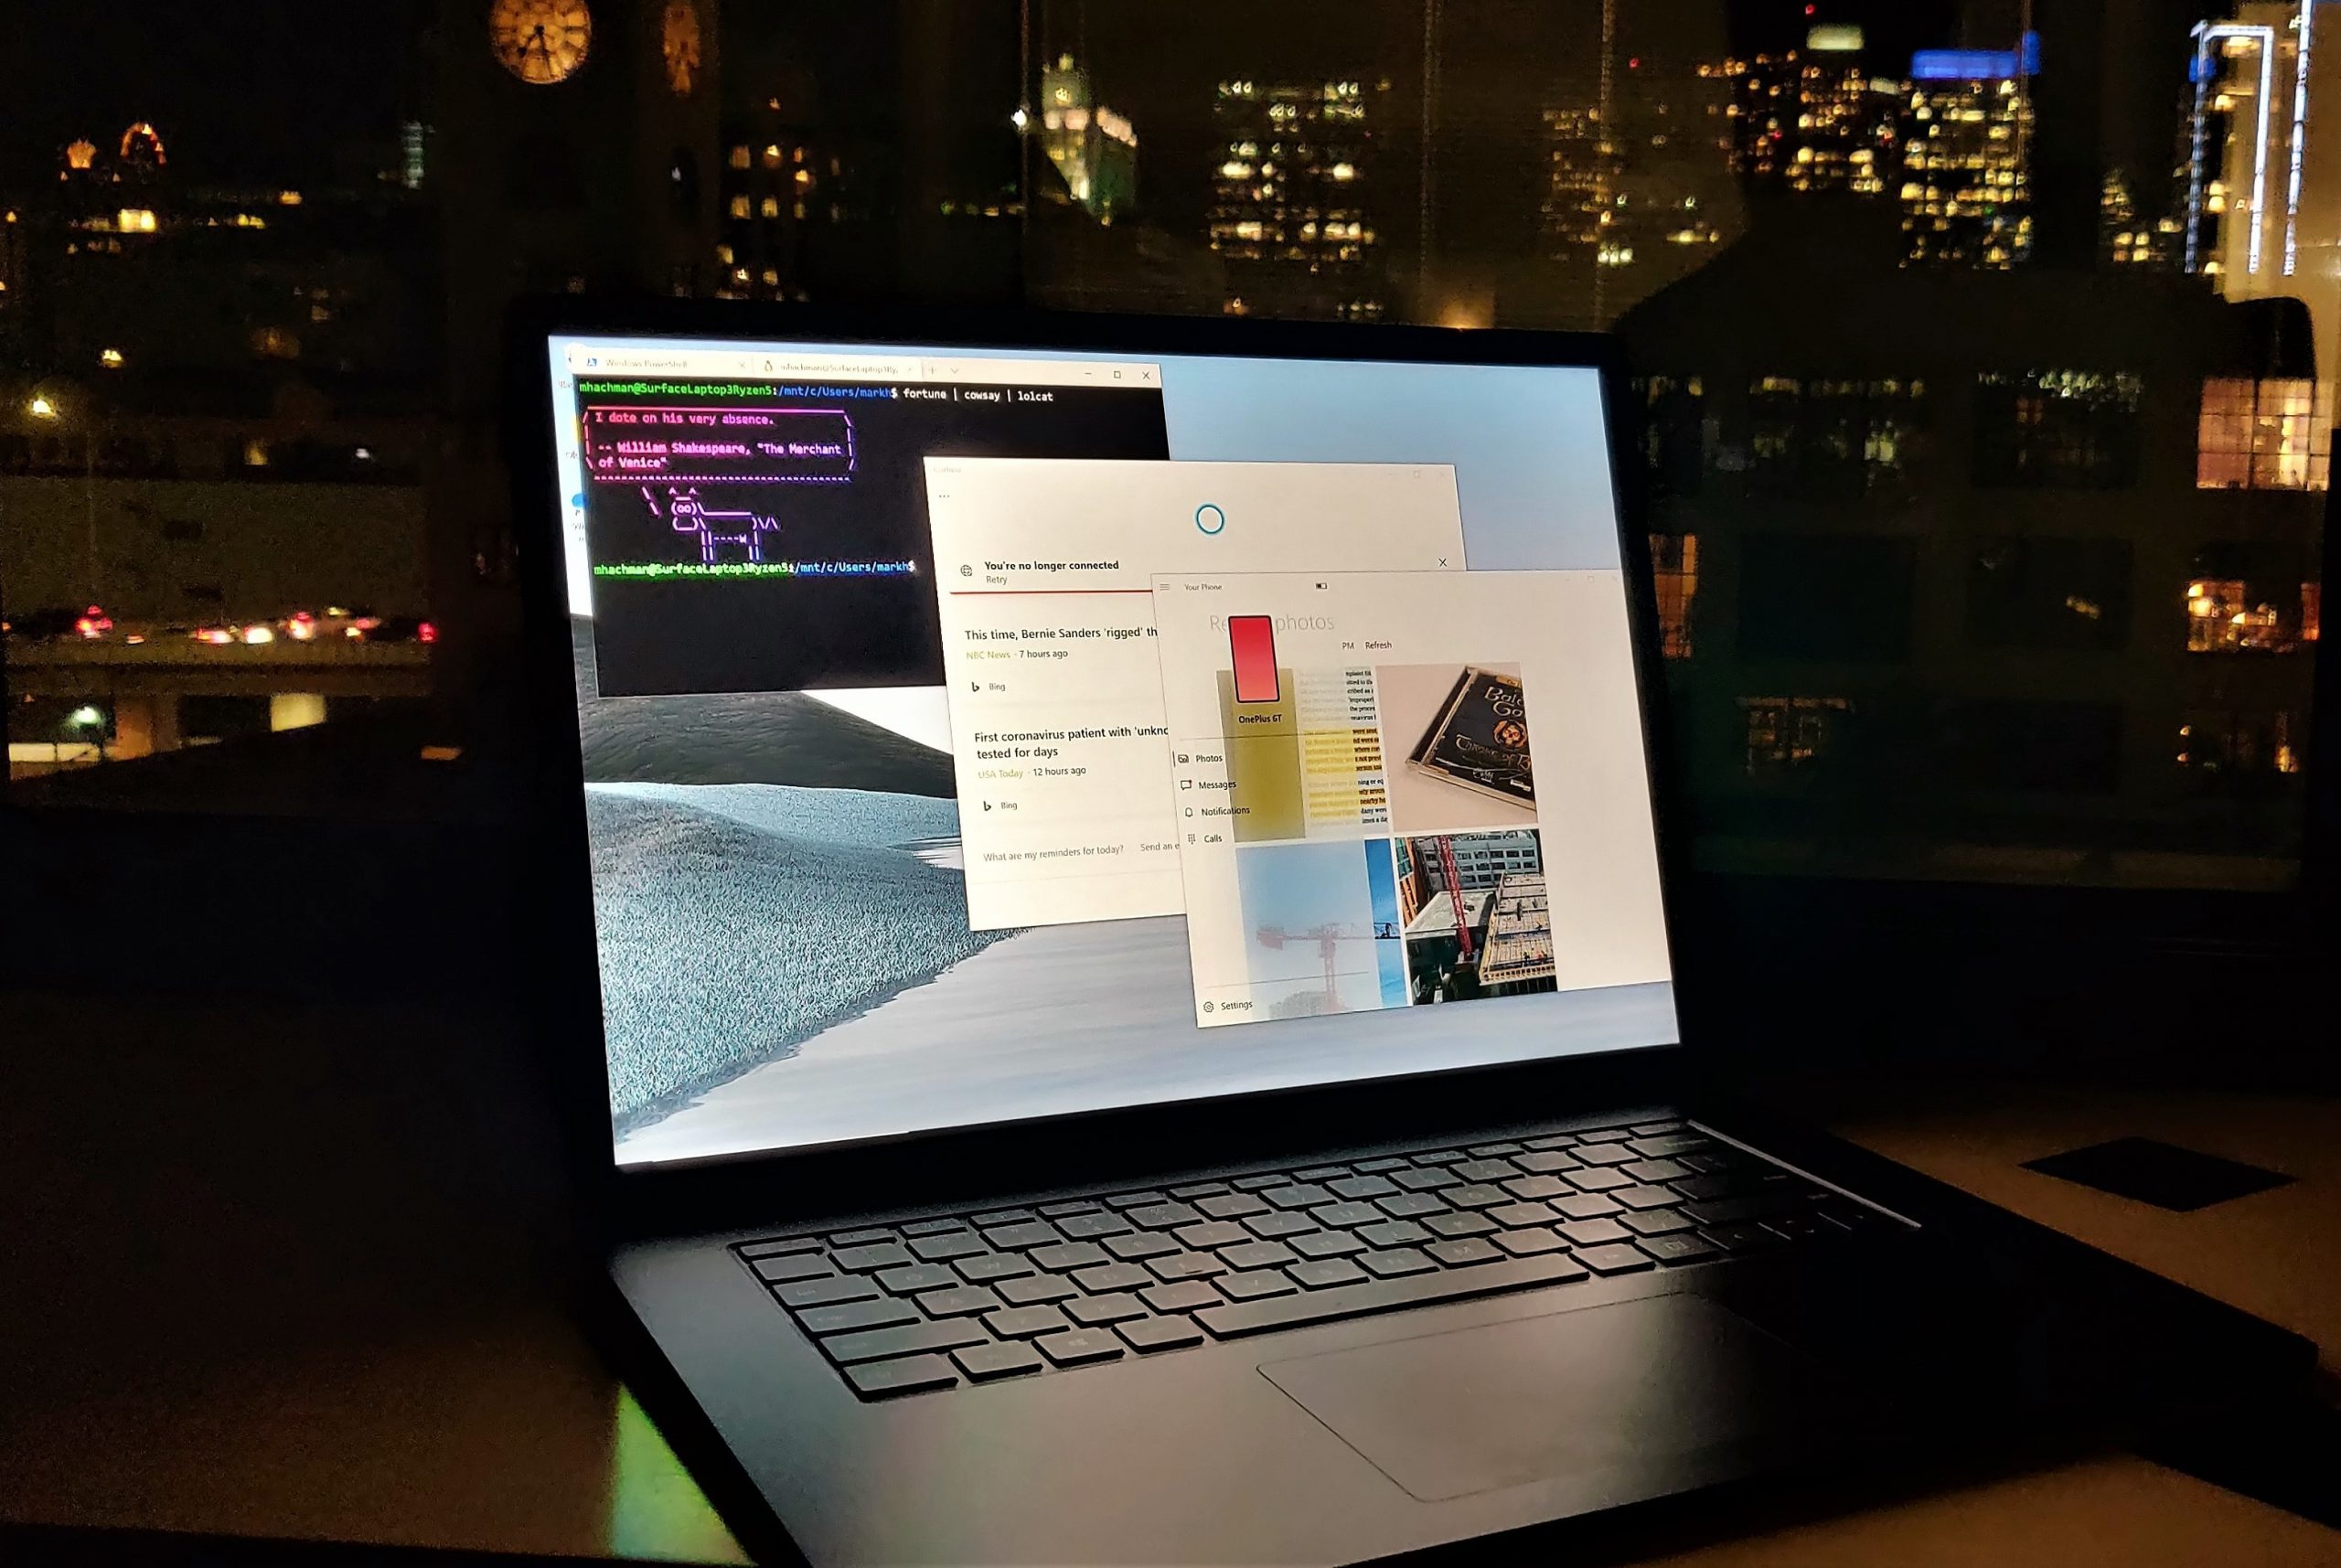 Microsoft taps Windows 10 2004 as 'May Update,' preps for release next month